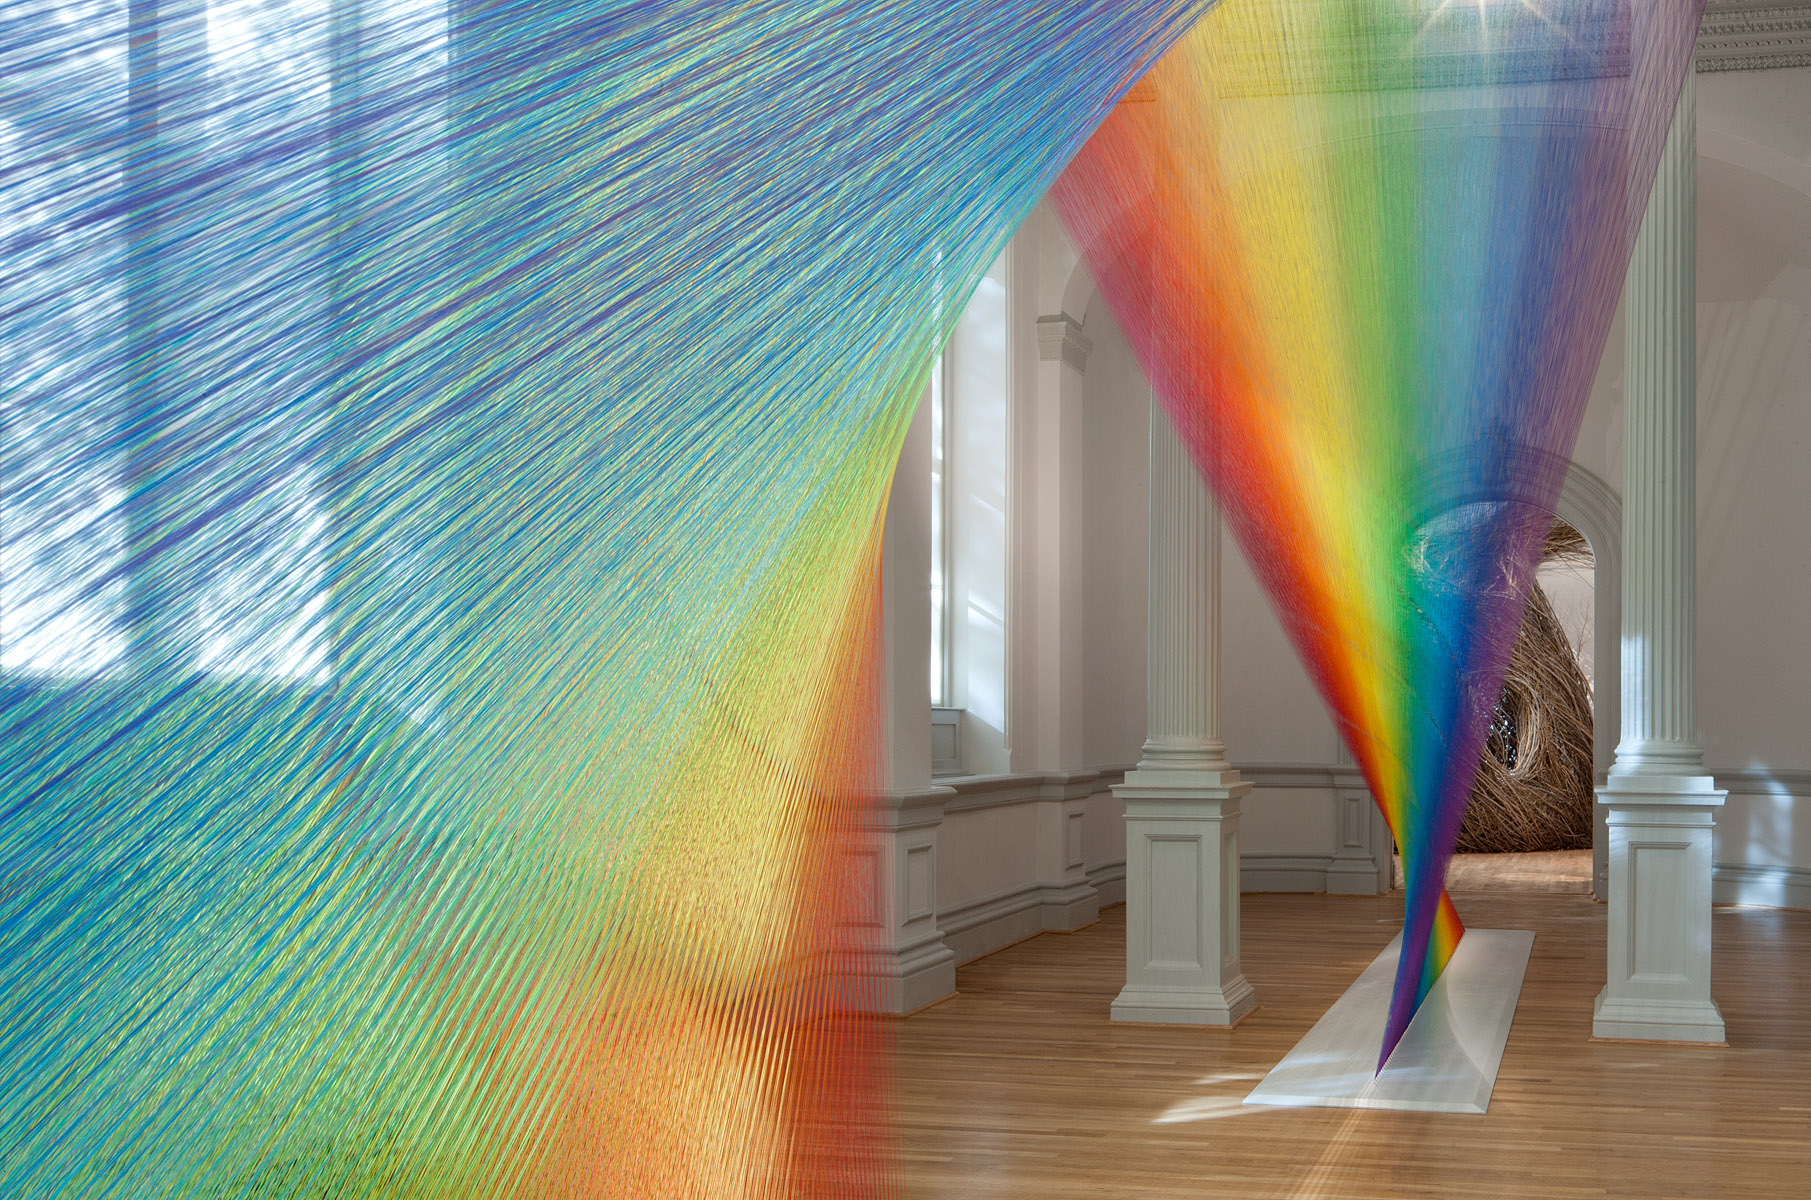 miles of thread and a giant needle weave indoor rainbows creators